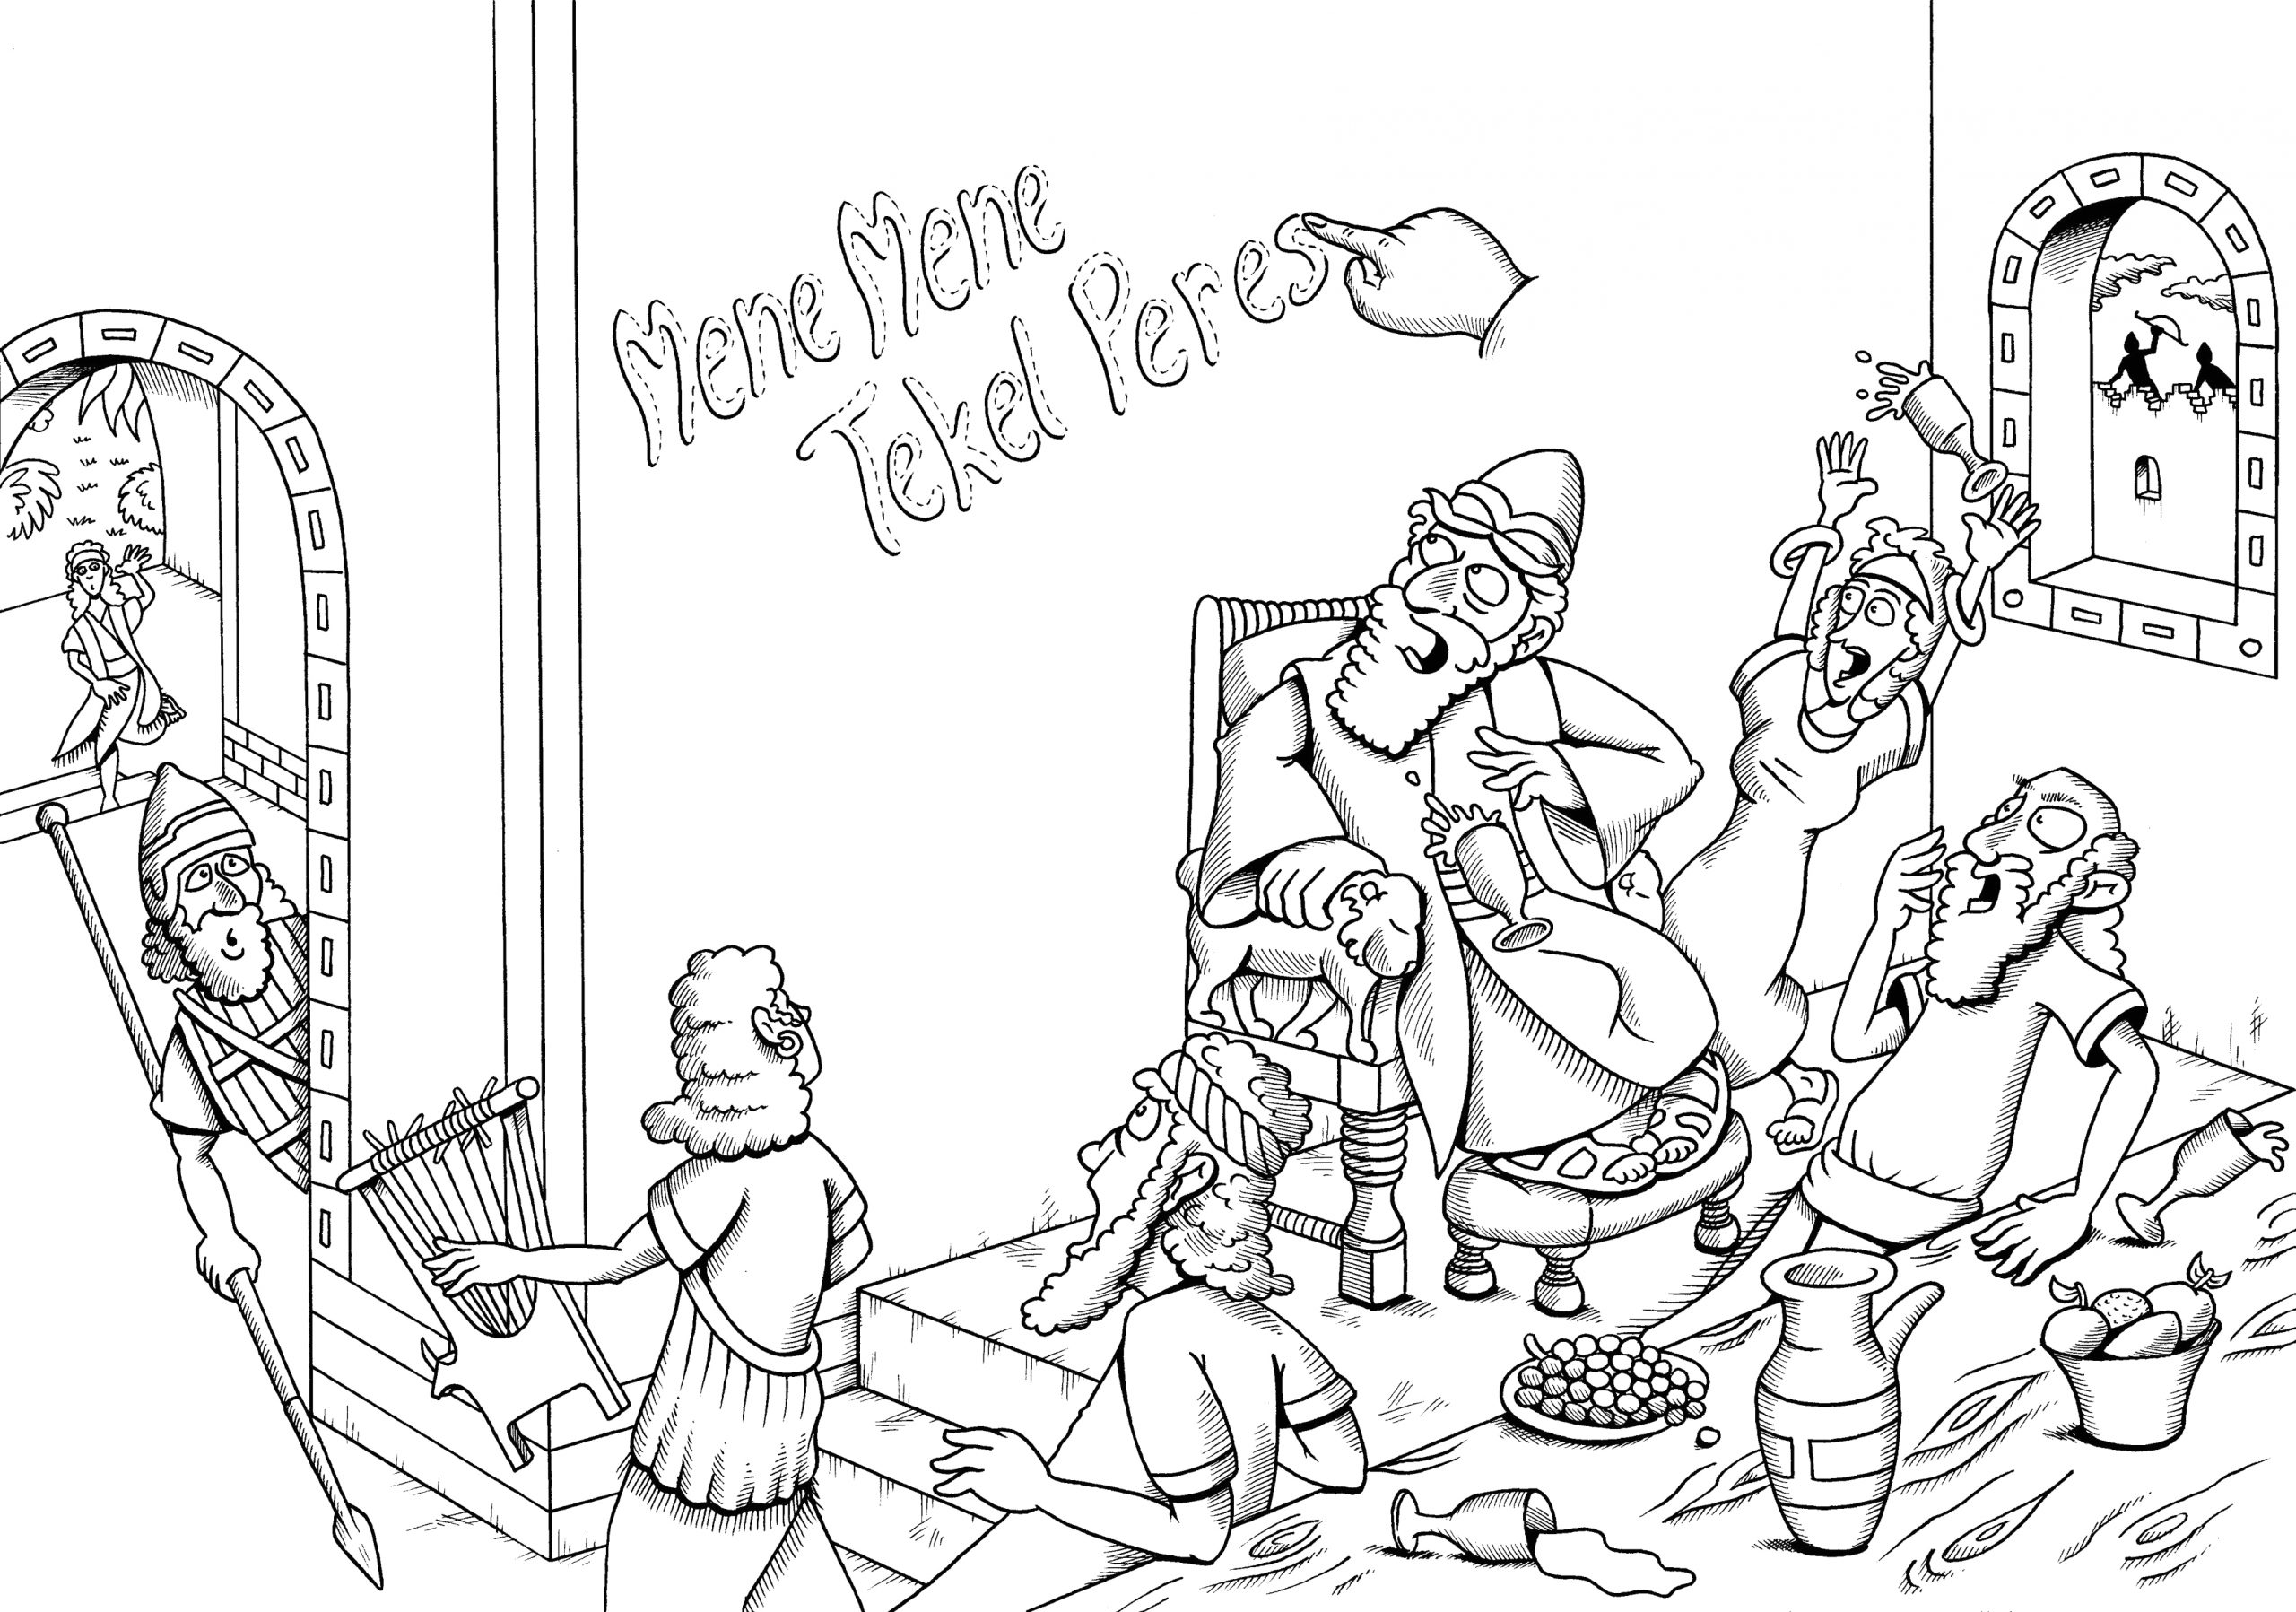 Daniel 5 the Writing On the Wall Coloring Page Daniel Writing the Wall Coloring Page Coloring Pages